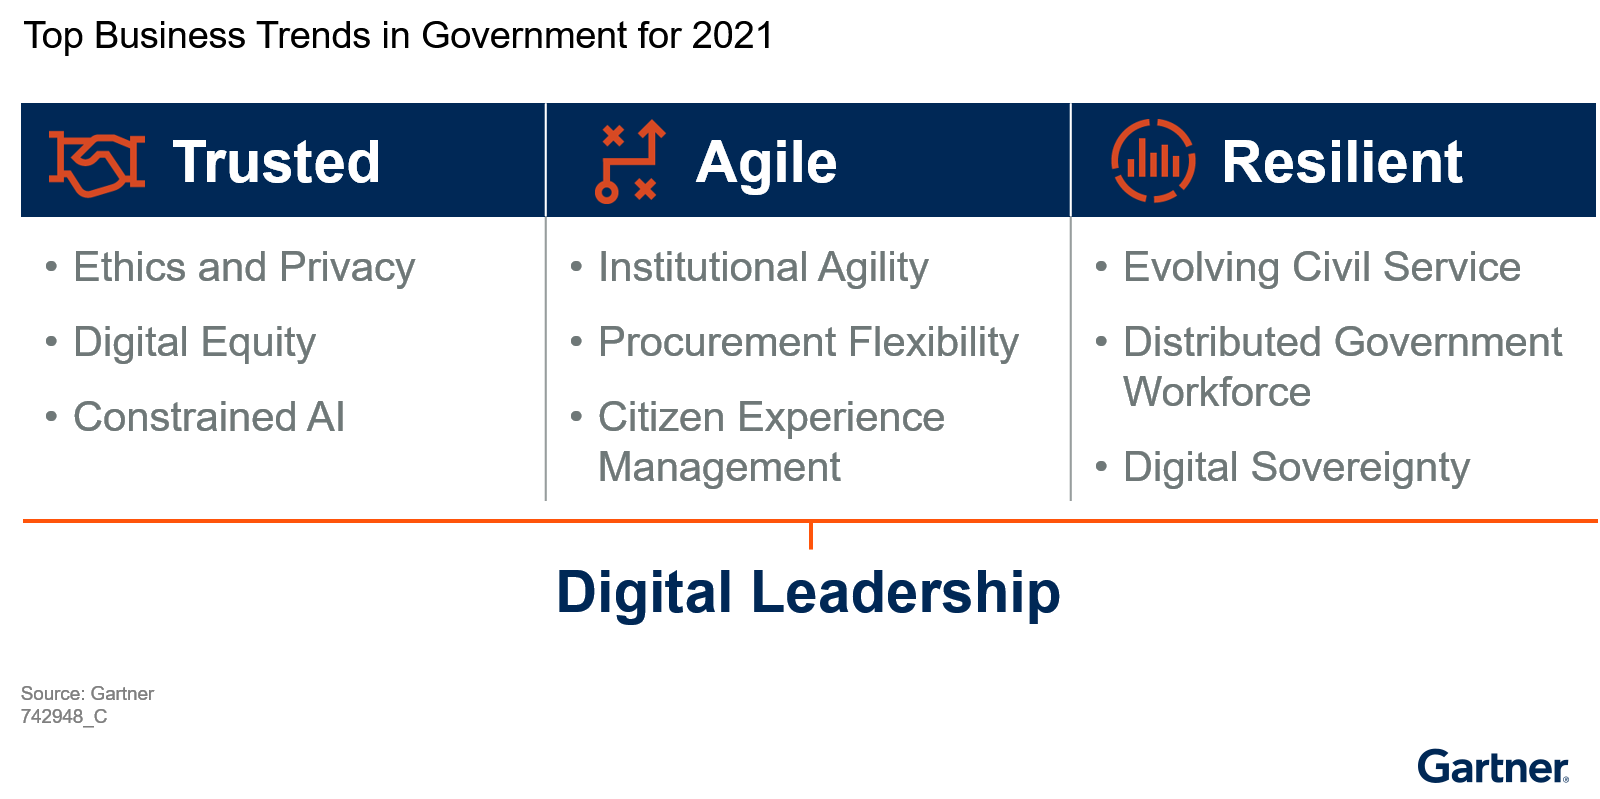 Figure 2 depicts three columns with the heading labels Trusted, Agile and Resilient from left to right. Three government business trends are listed in the Trusted column. They are Ethics and Privacy, Digital Equity, and Constrained AI. In the Agile column, Institutional Agility, Procurement Flexibility and Citizen Experience Management are listed. The Resilient column includes the Evolving Civil Service, Distributed Government Workforce and Digital Sovereignty trends. Below the three columns is the Digital Leadership trend. This indicates the critical role digital leadership plays in supporting the other nine government business trends.